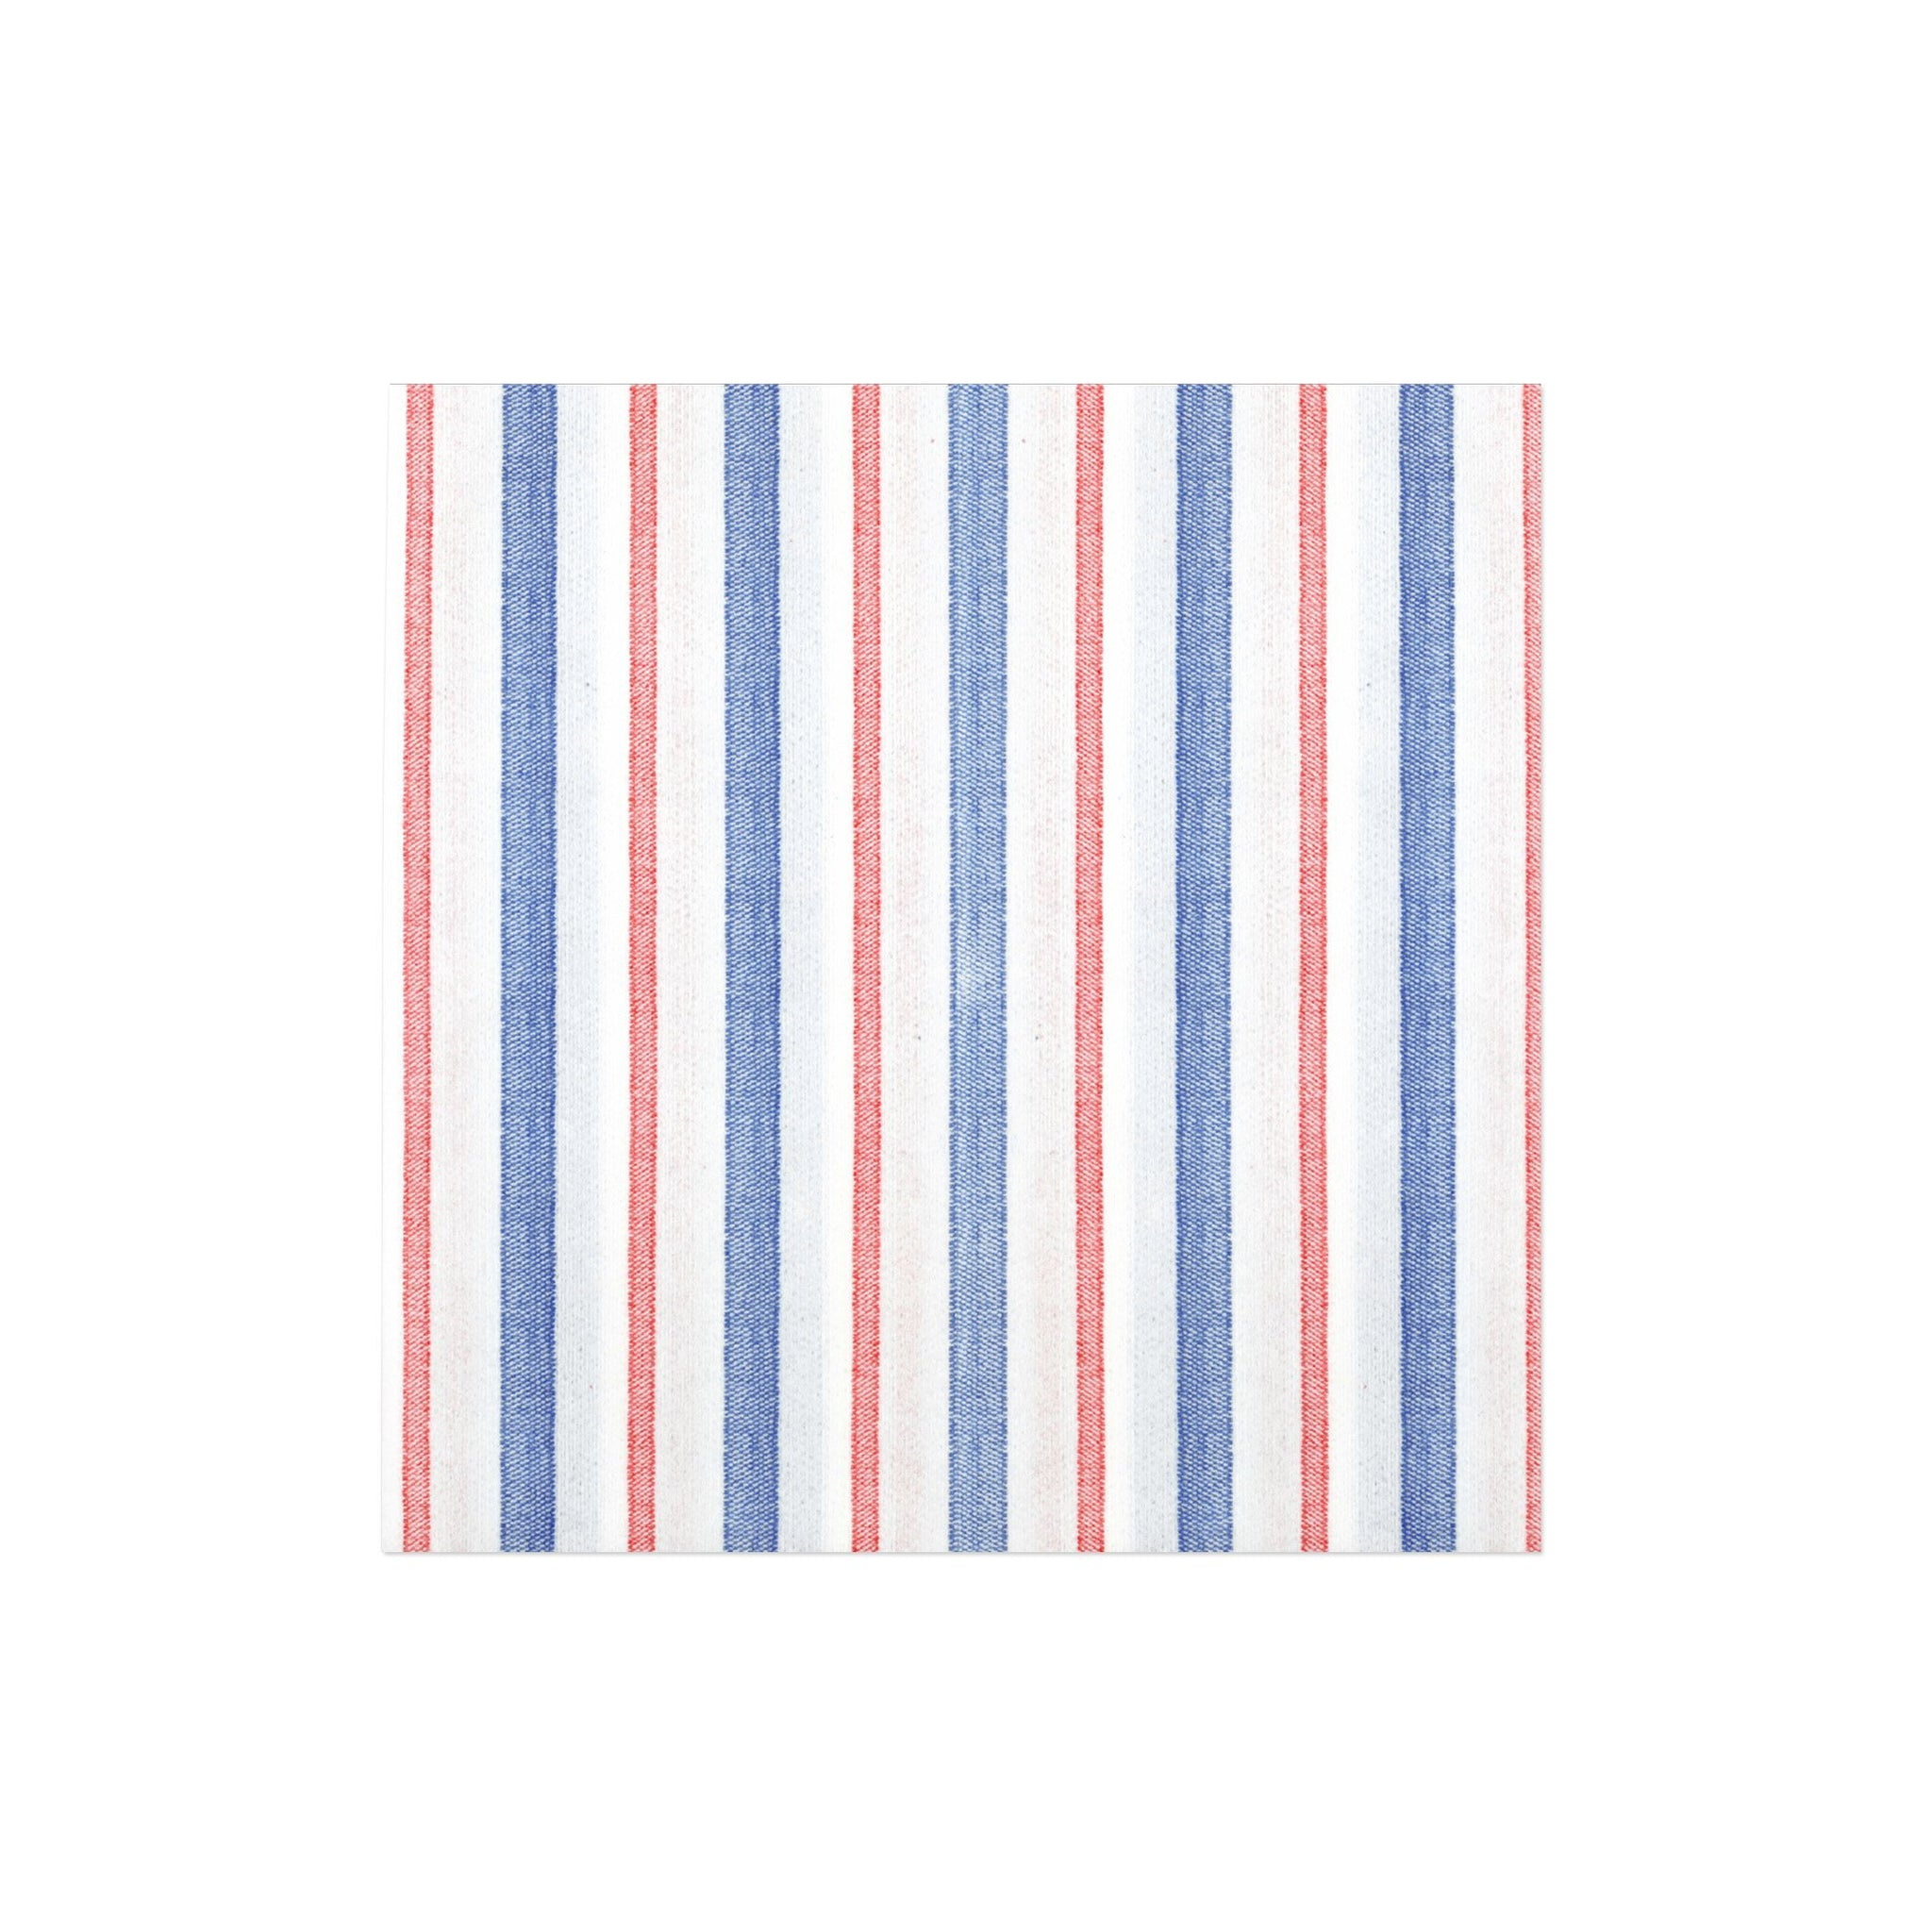 Papersoft Napkins Americana Stripe Dinner Napkins (Pack of 50)